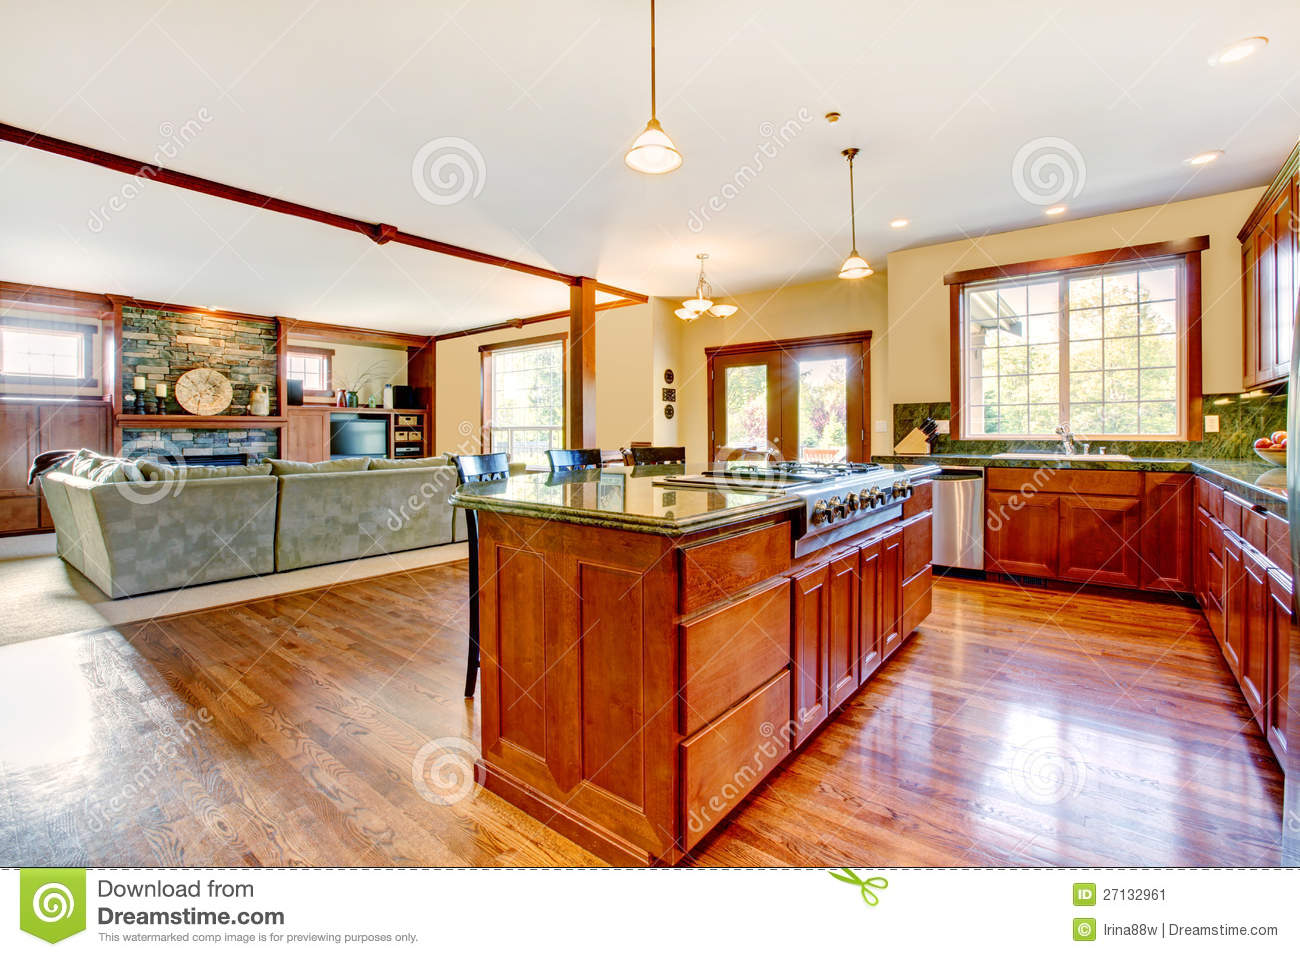 Luxury wood kitchen with living room with b stock image image 27132961 - Luxury kitchen room ...